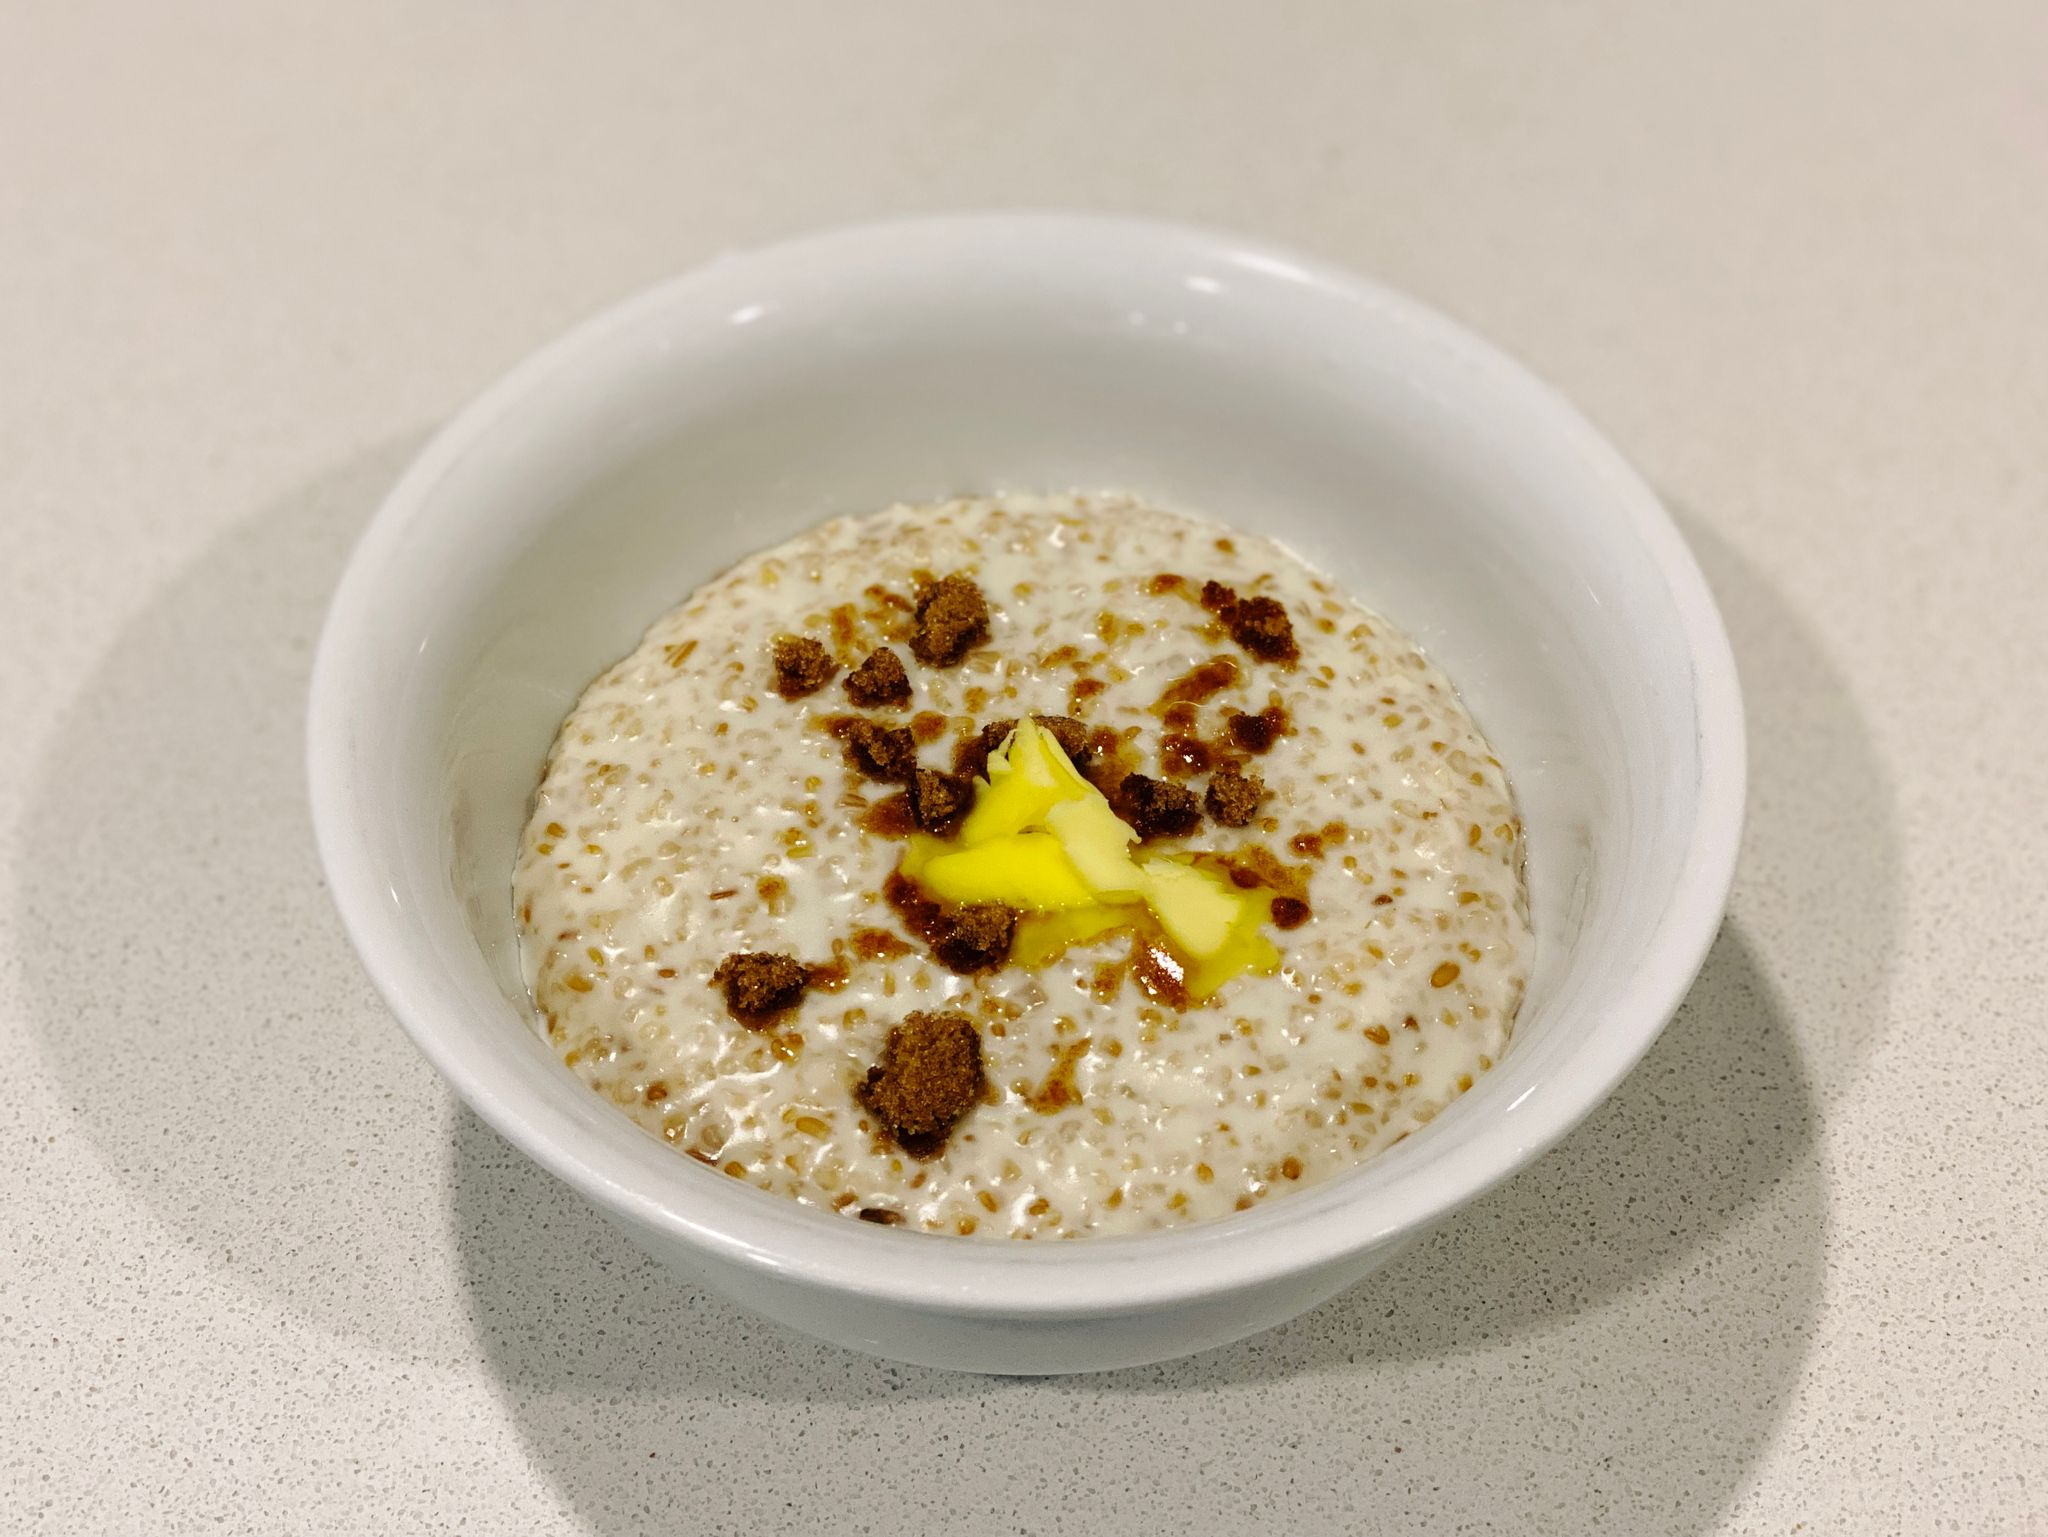 A photo of a bowl of porridge with brown sugar and a dollop of butter on top.